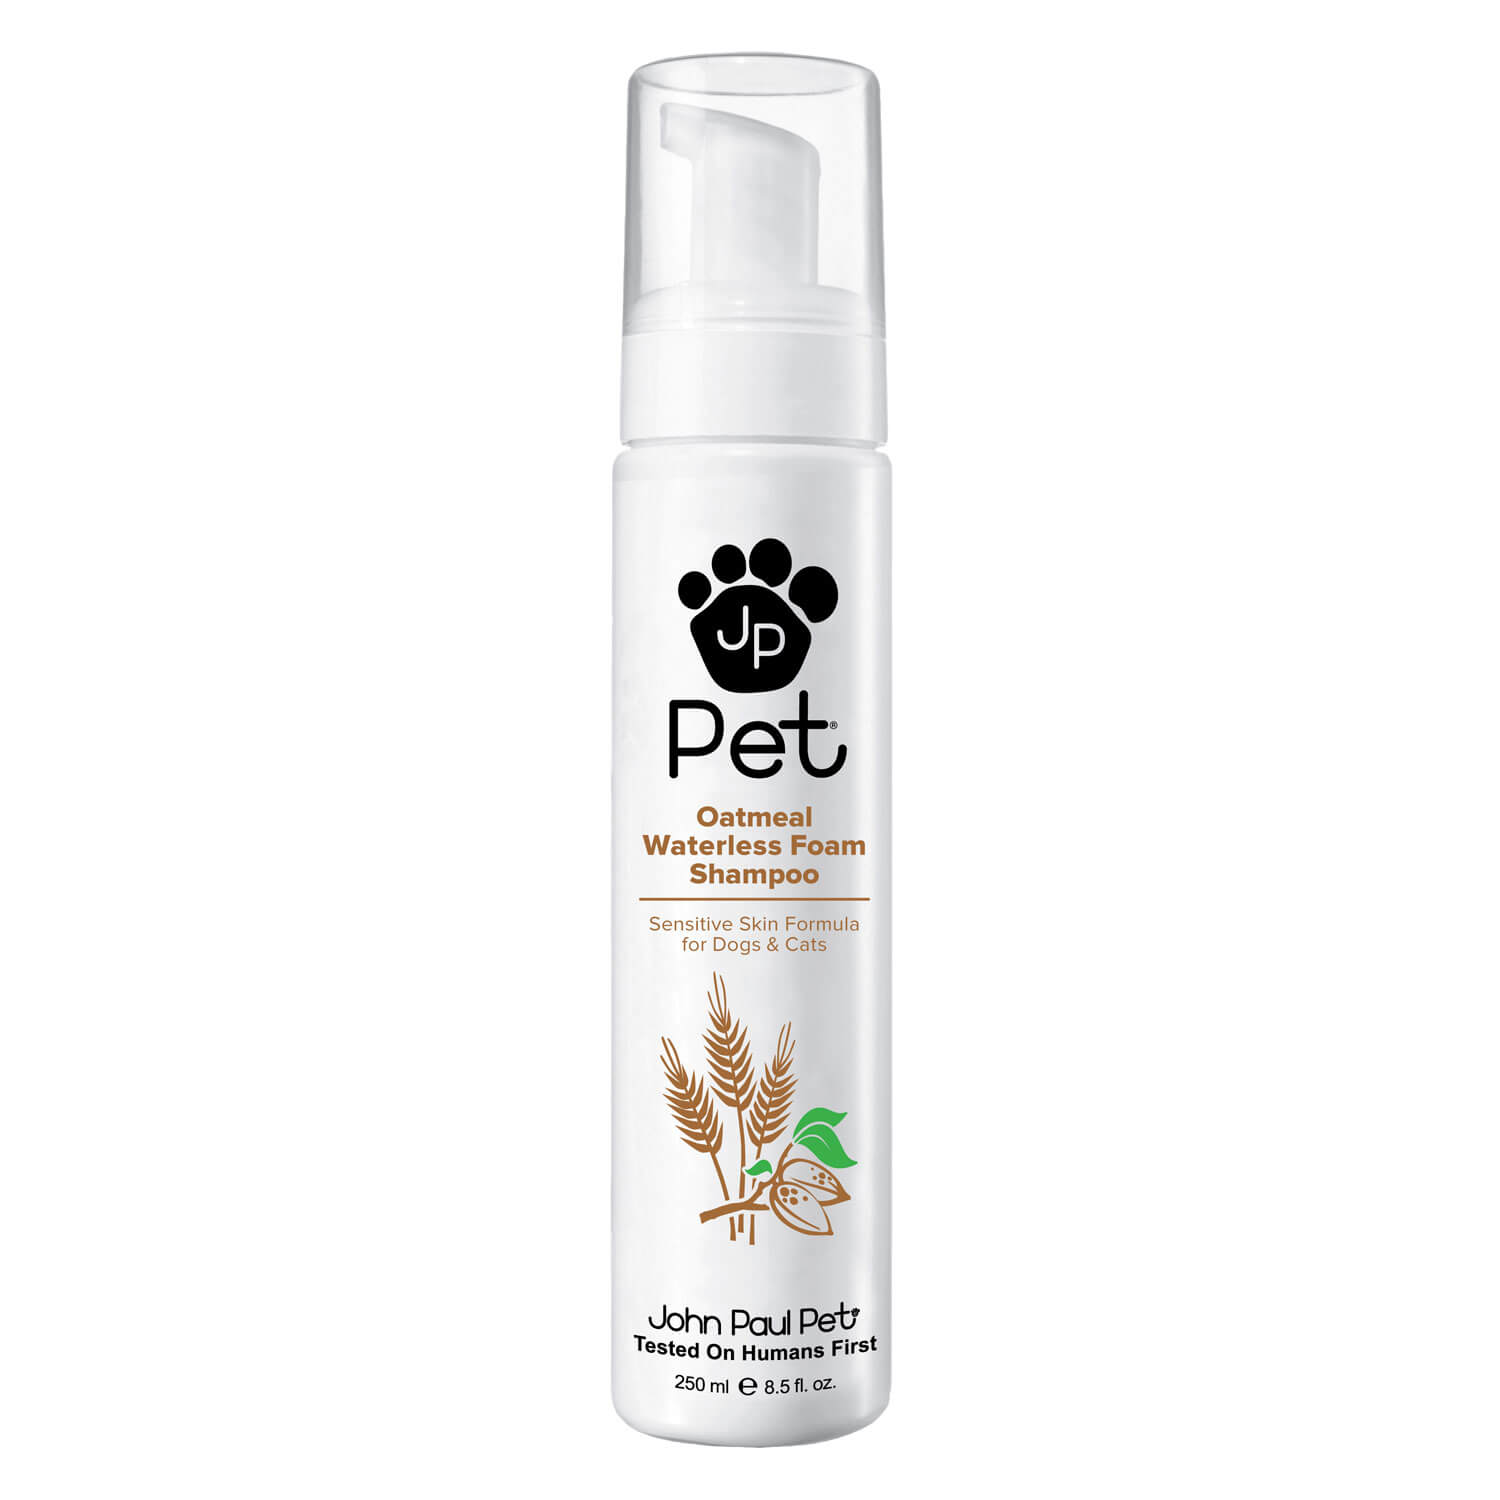 JP Pet - Oatmeal Waterless Foam Shampoo